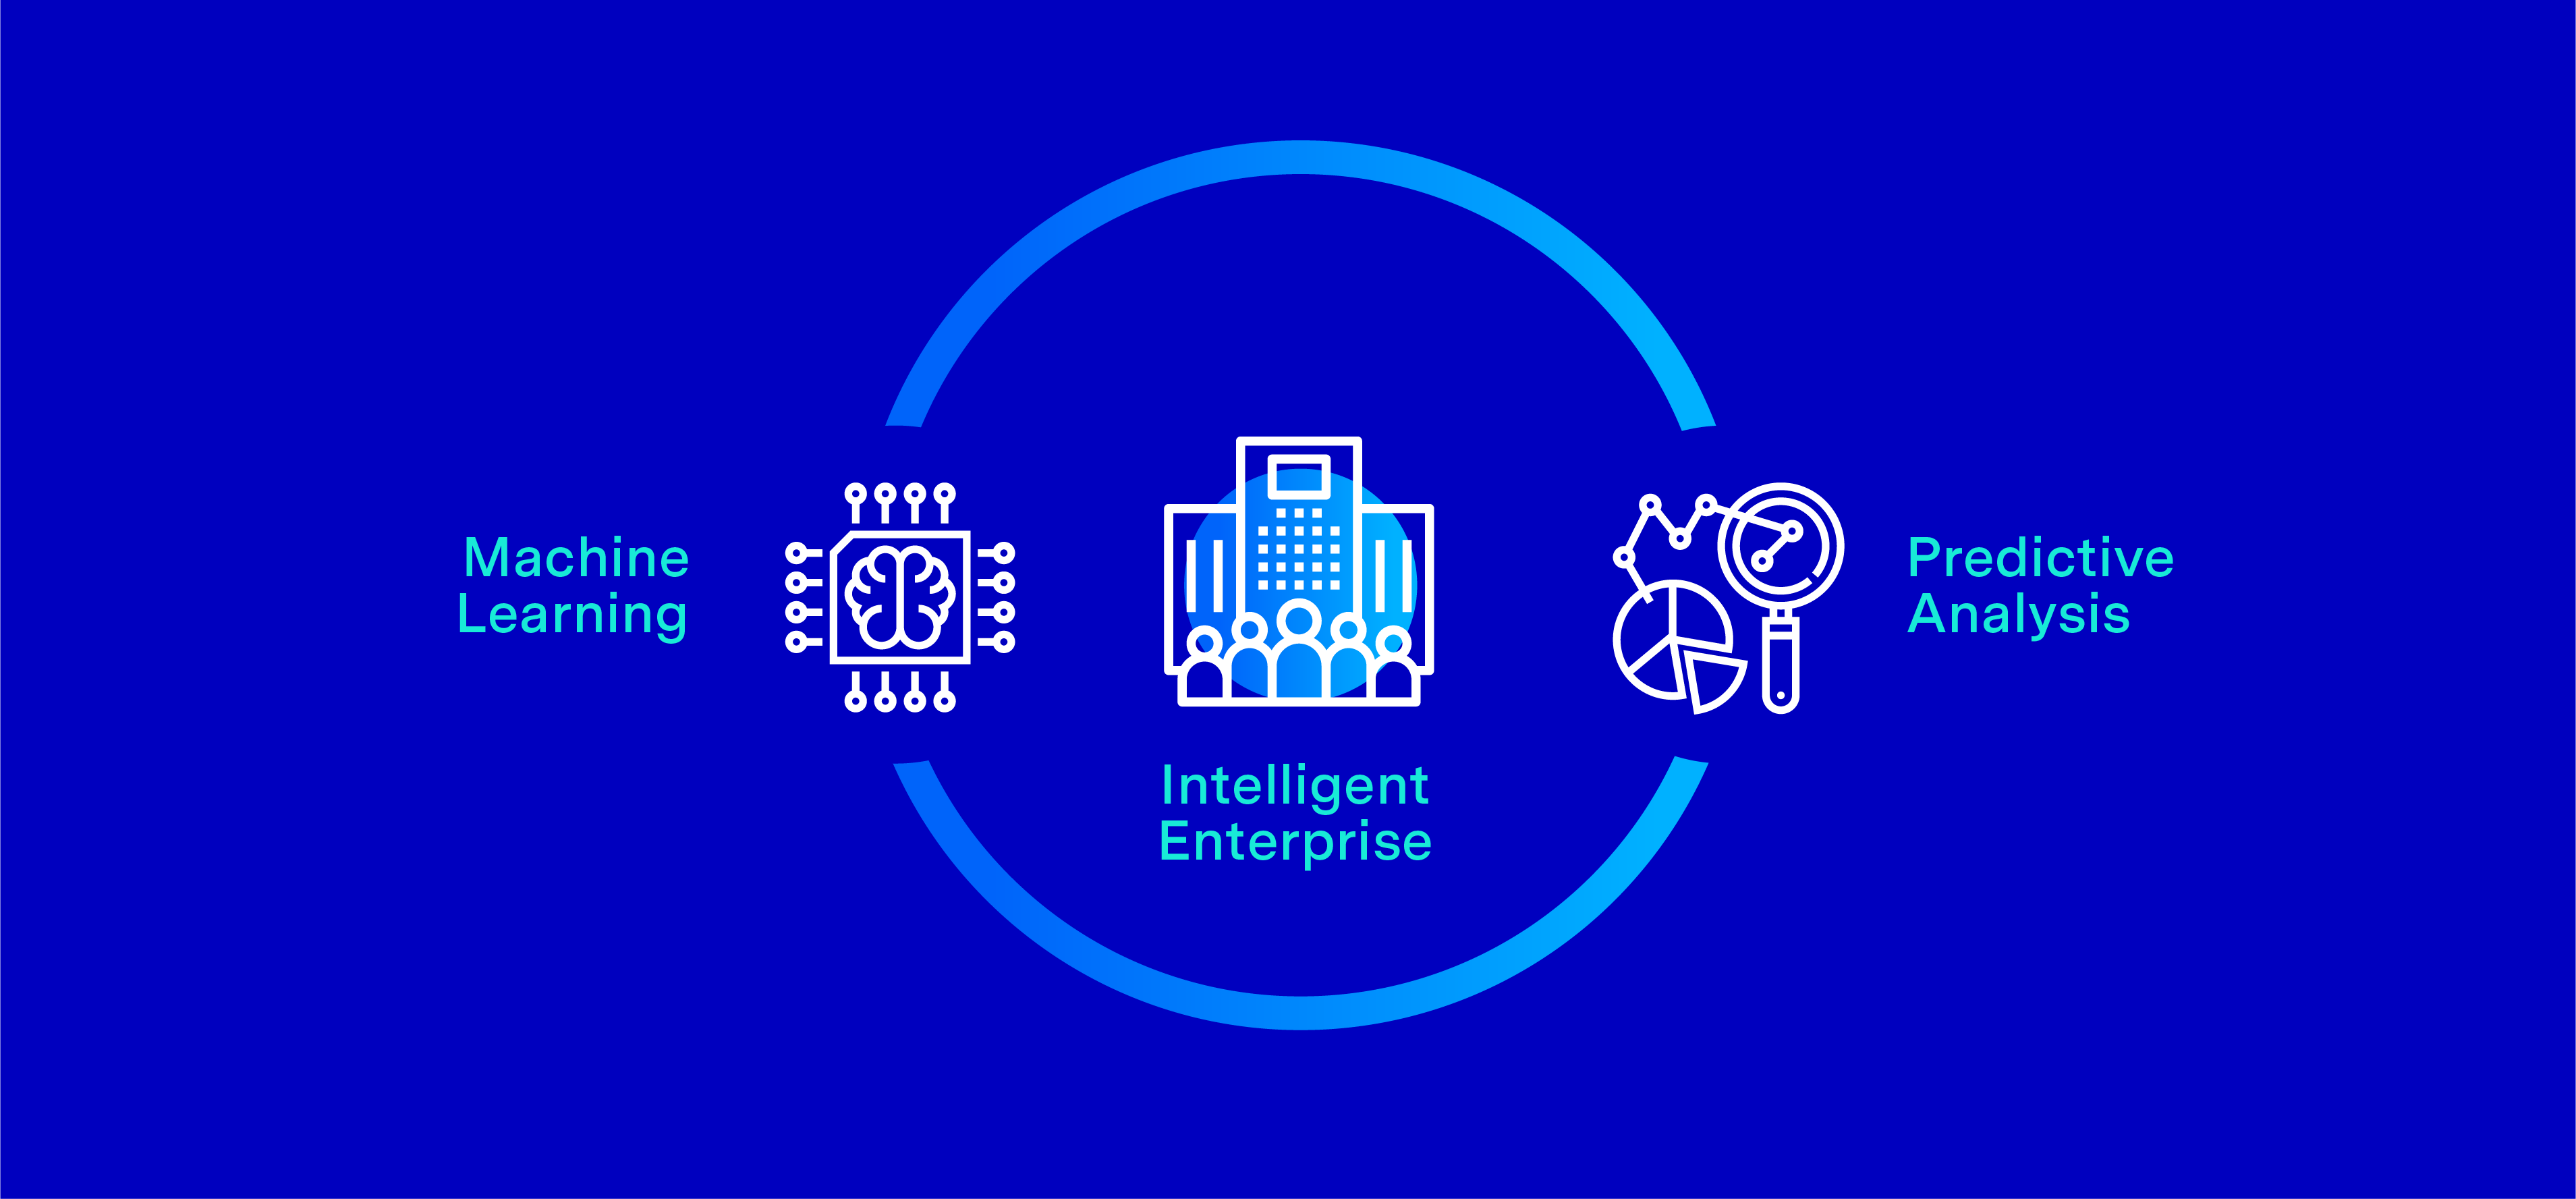 Intelligent Enterprise - Machine Learning and Predictive Analysis